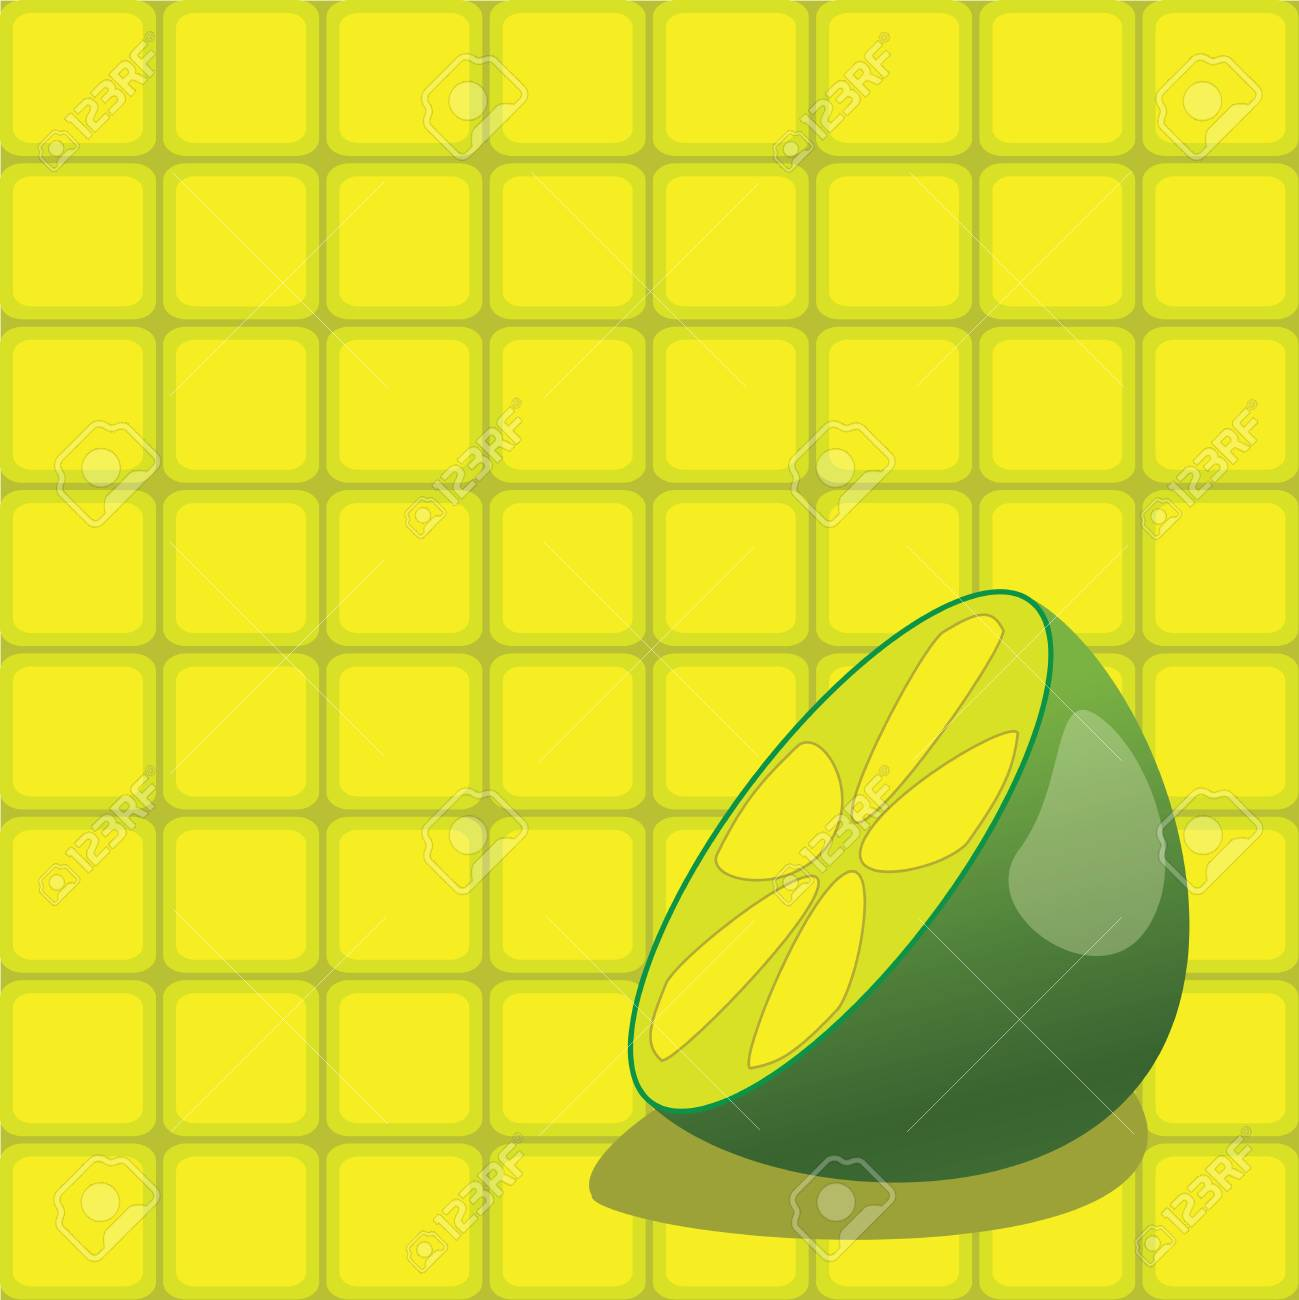 Back ground vector square draw Stock Vector - 4821234